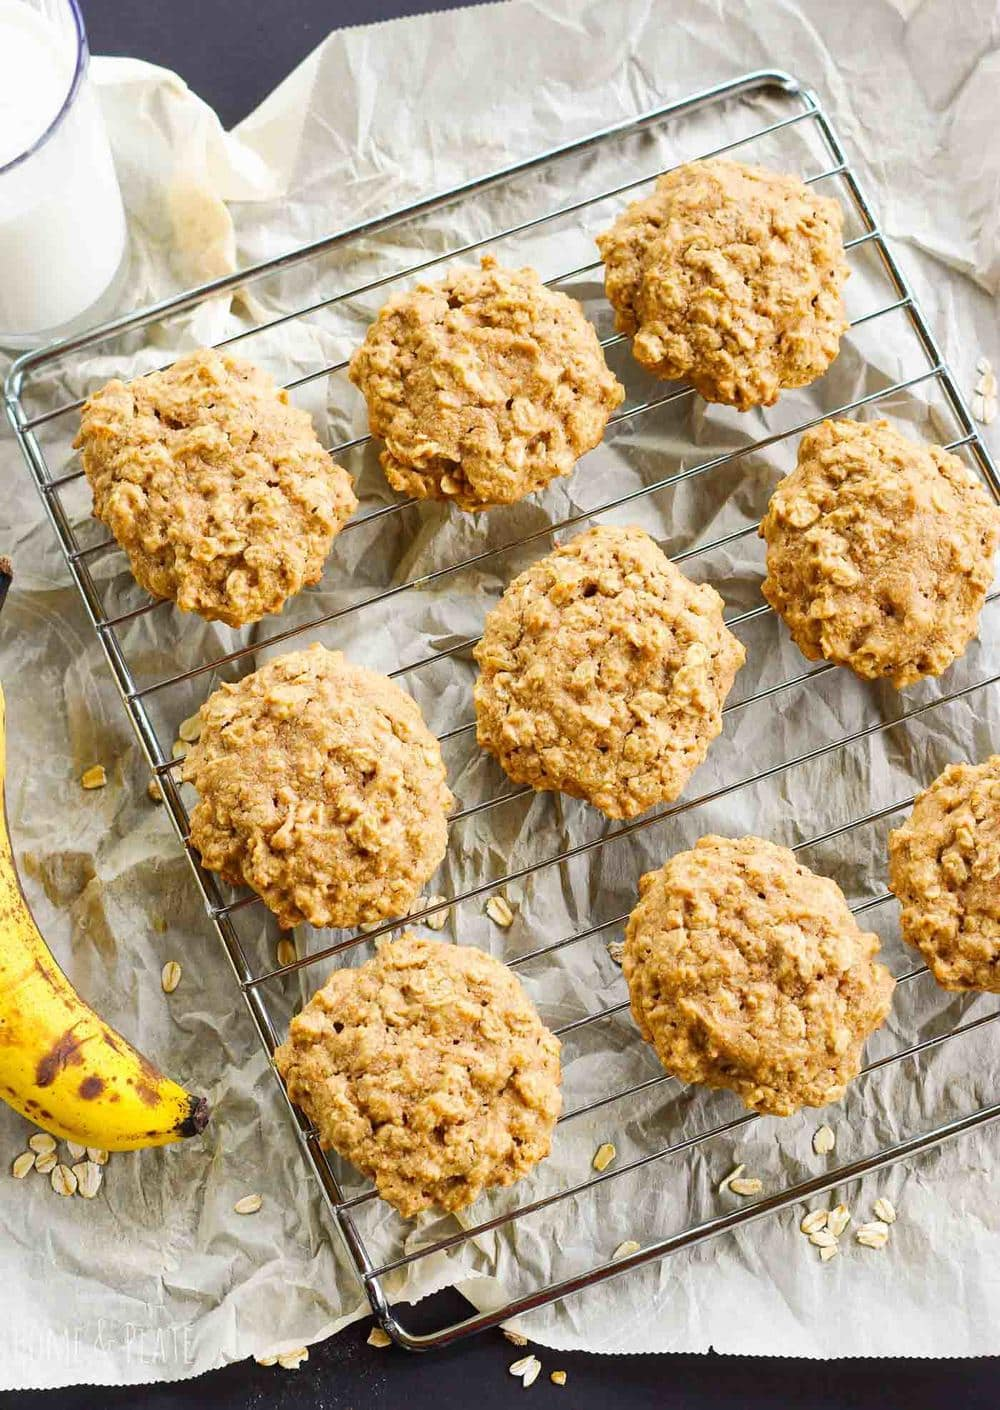 Healthy Peanut Butter Banana Cookies | www.homeandplate.com | Chock-full of oats, potassium filled bananas and protein-rich crunchy peanut butter, these sweet cookies are the perfect grab and go breakfast or snack.